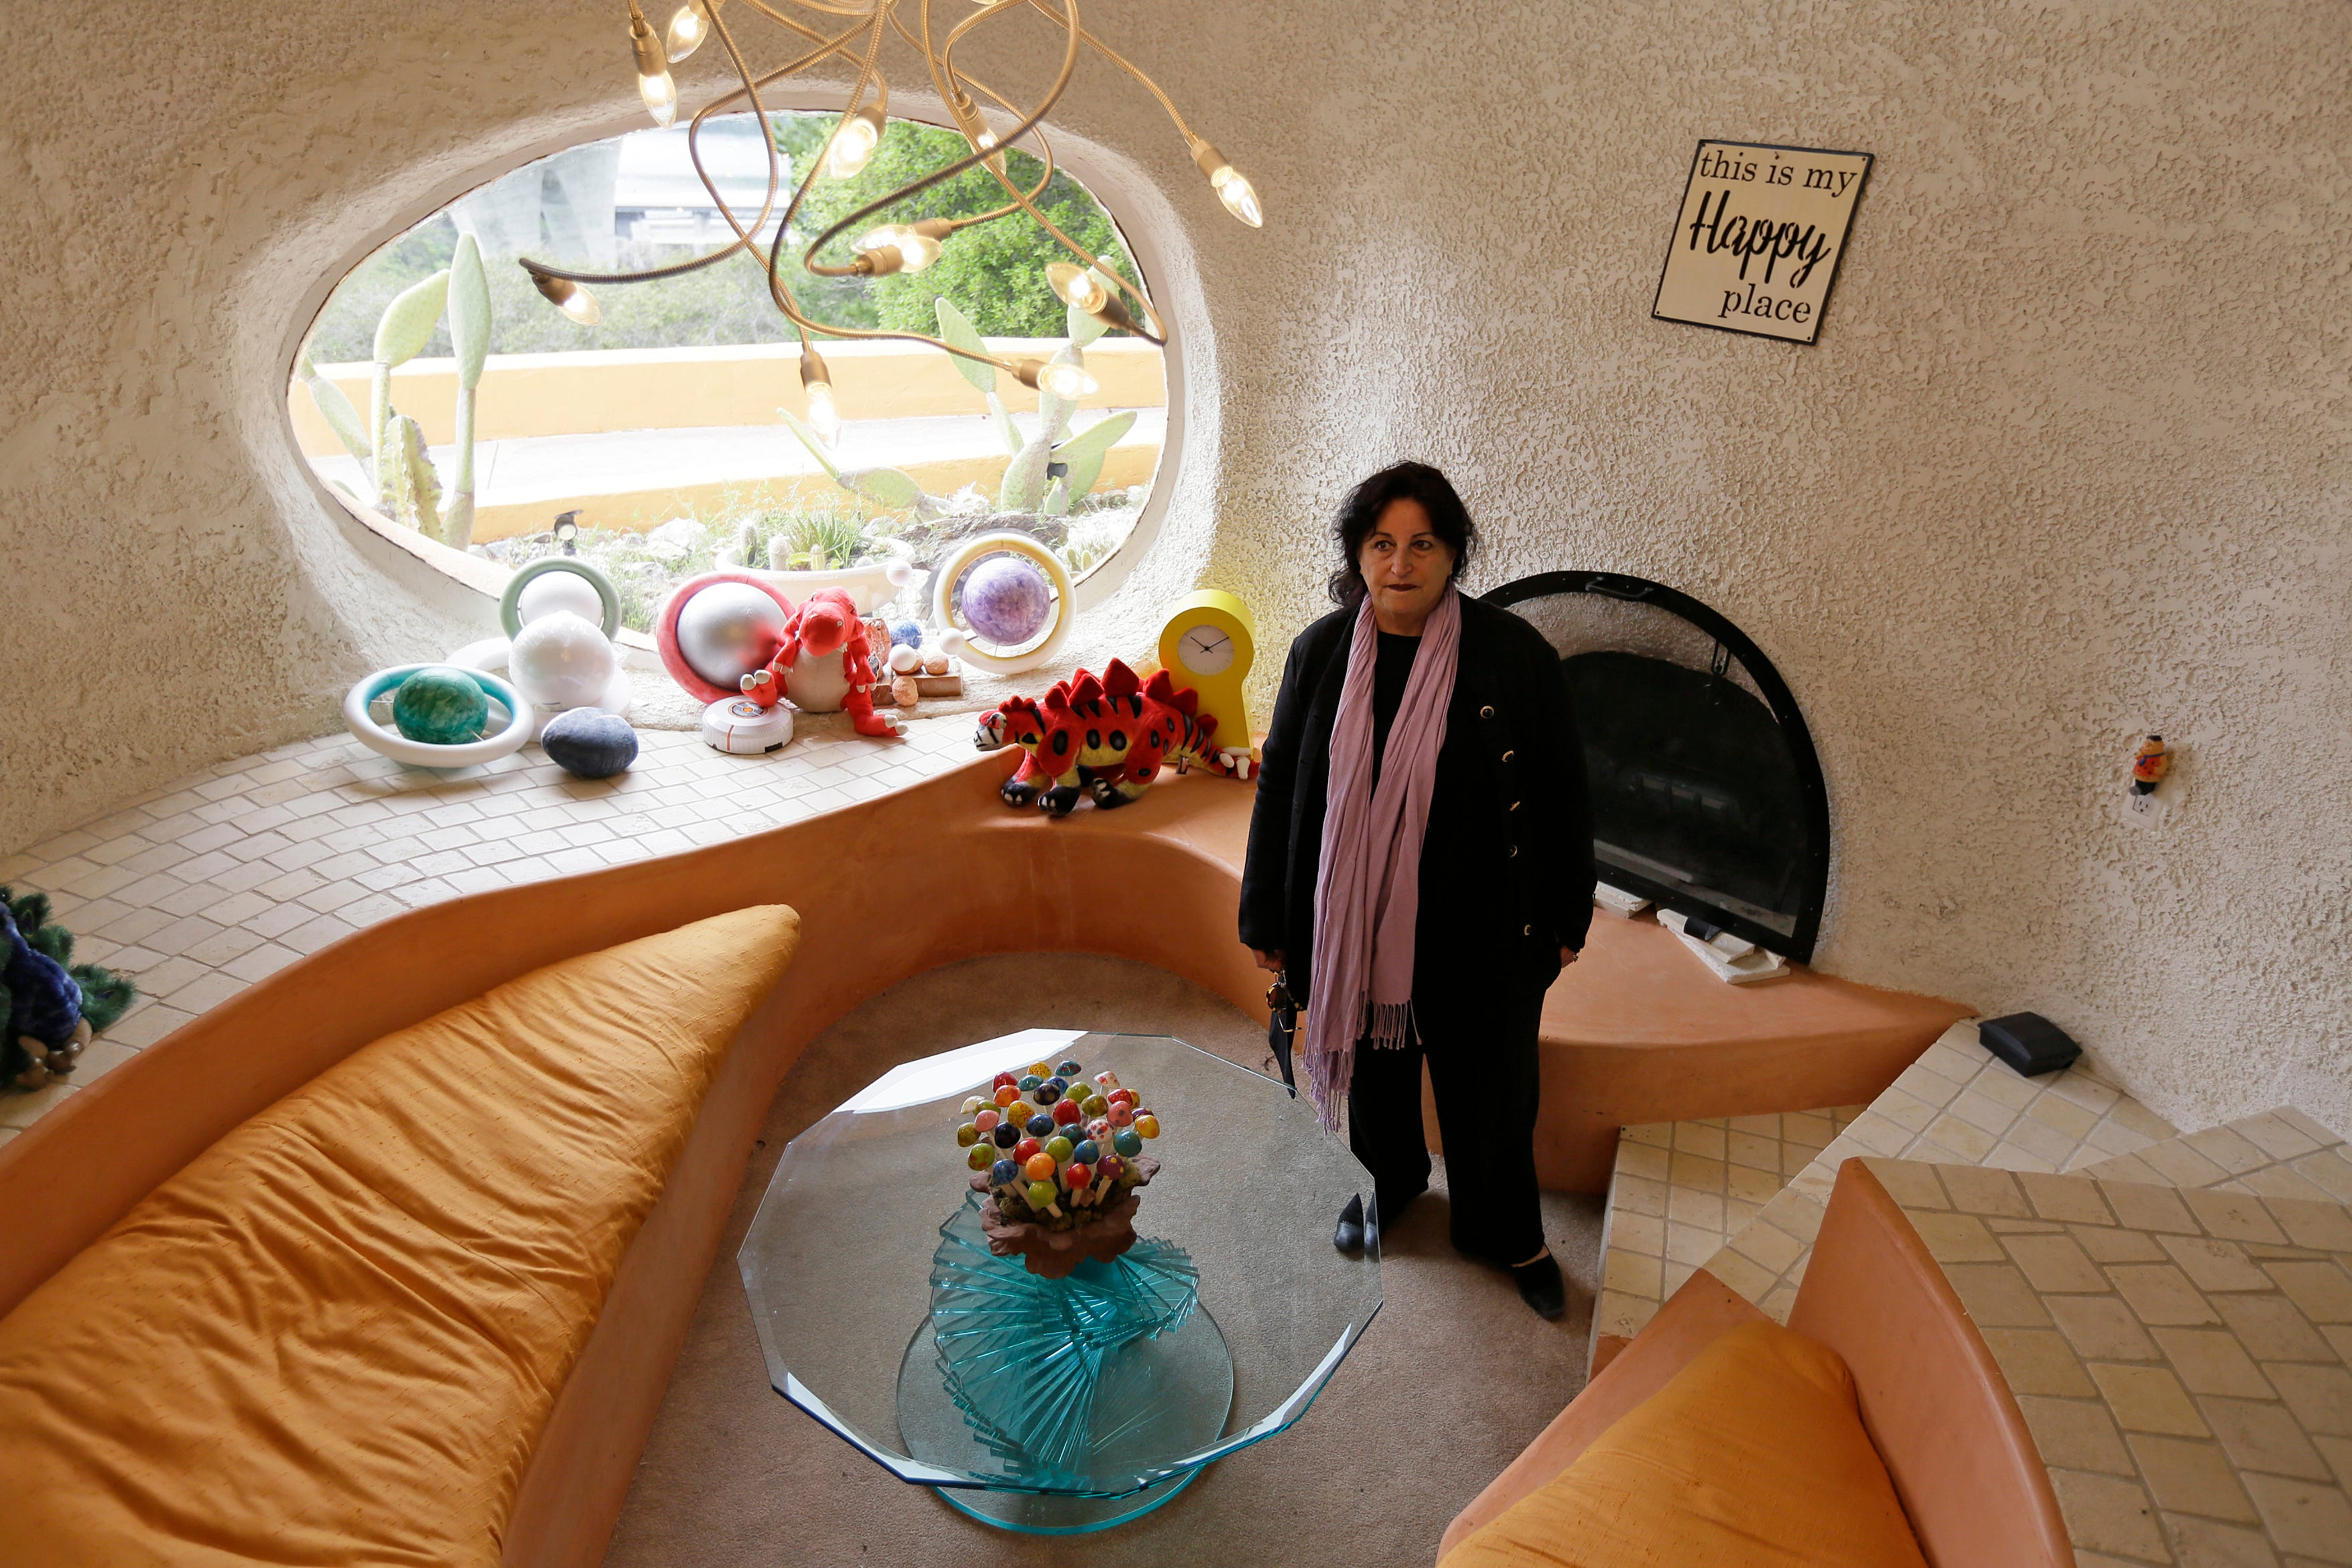 """Attorney Angela Alioto looks over a sunken room called """"The Happy Place,"""" inside the Flintstone House in Hillsborough, Calif."""